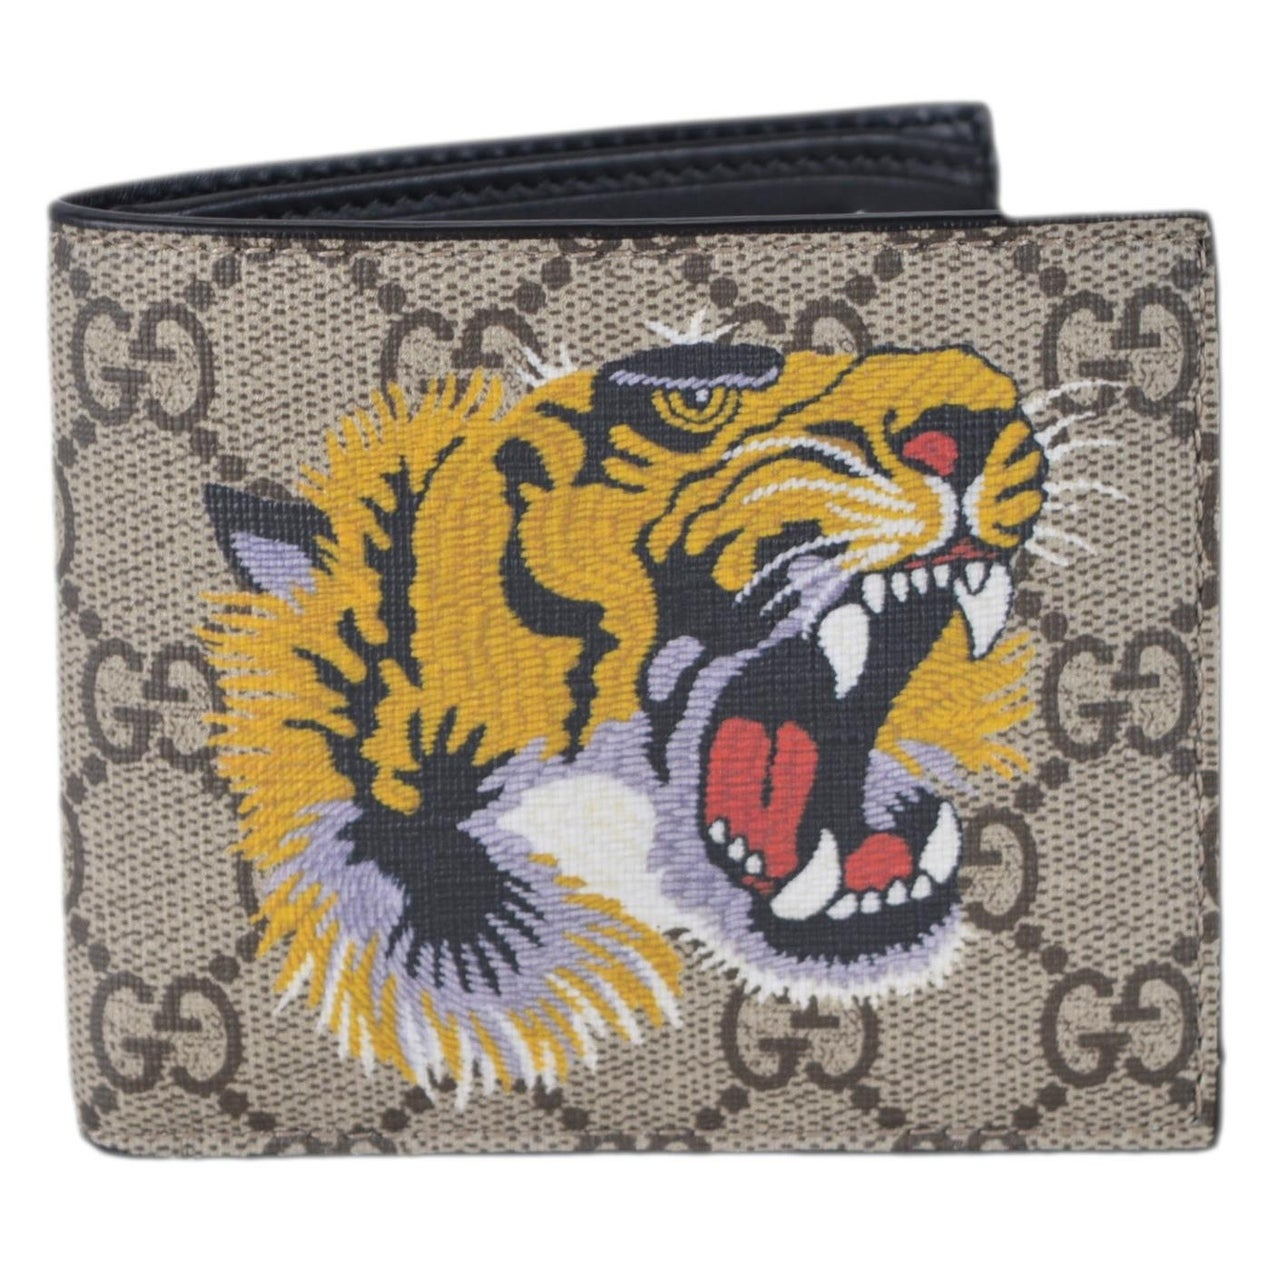 26a63fef3c03 Shop Gucci Men's Beige GG Supreme Canvas Angry Bengal Tiger Bifold Wallet -  measures 4.25 x 3.5 inches - Free Shipping Today - Overstock - 25435884